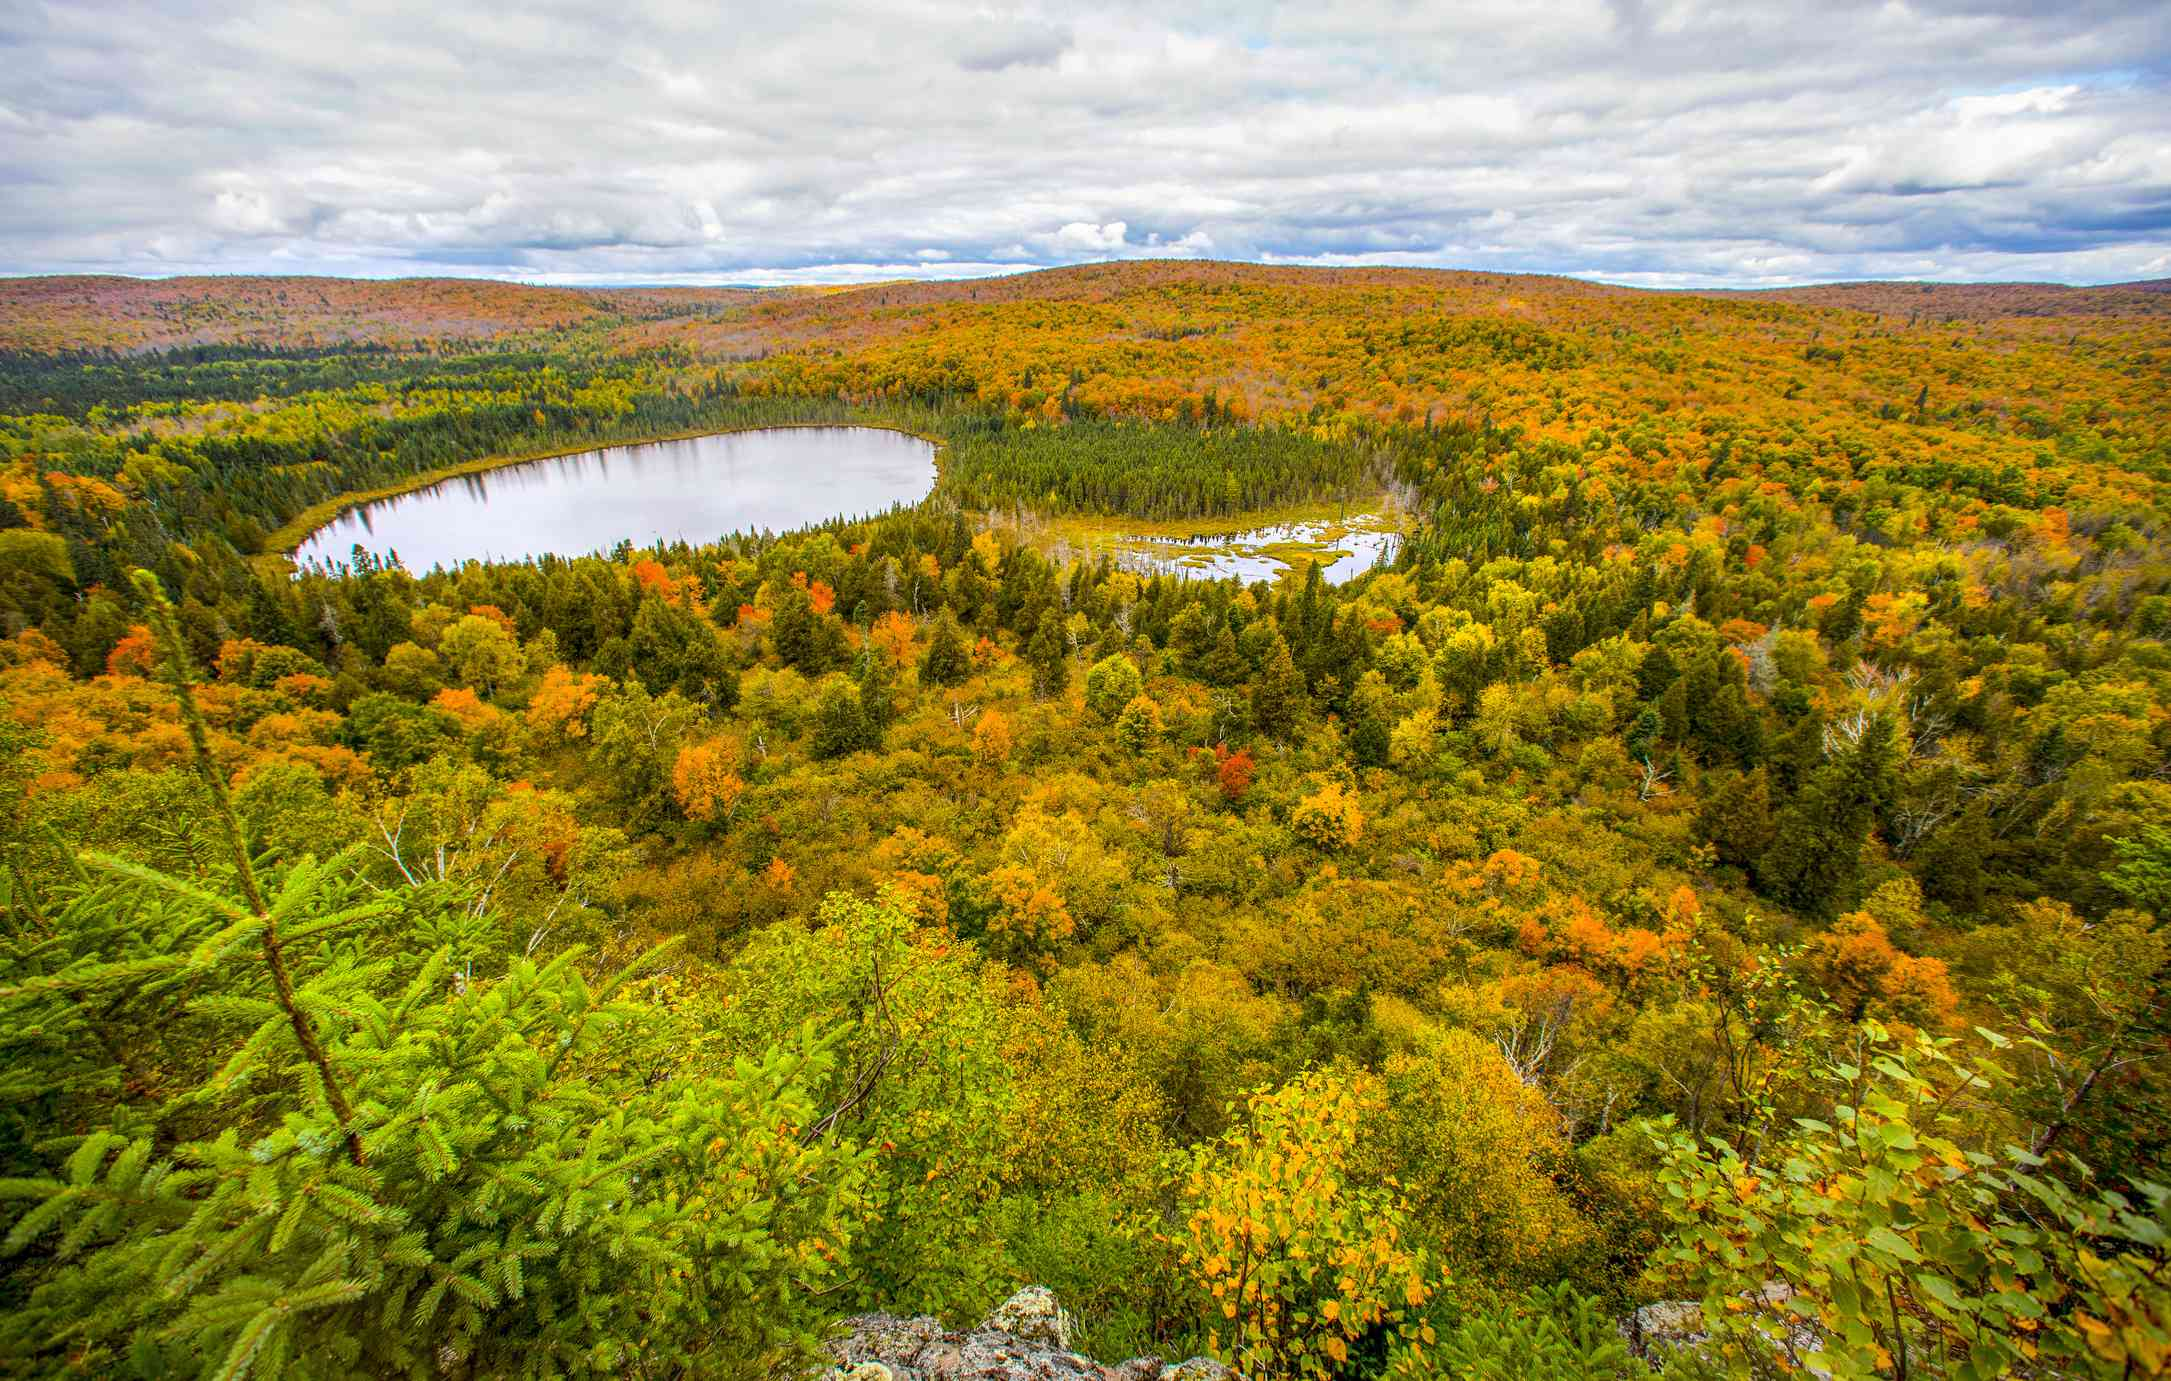 View of forest and lake near Tofte, Minnesota, USA